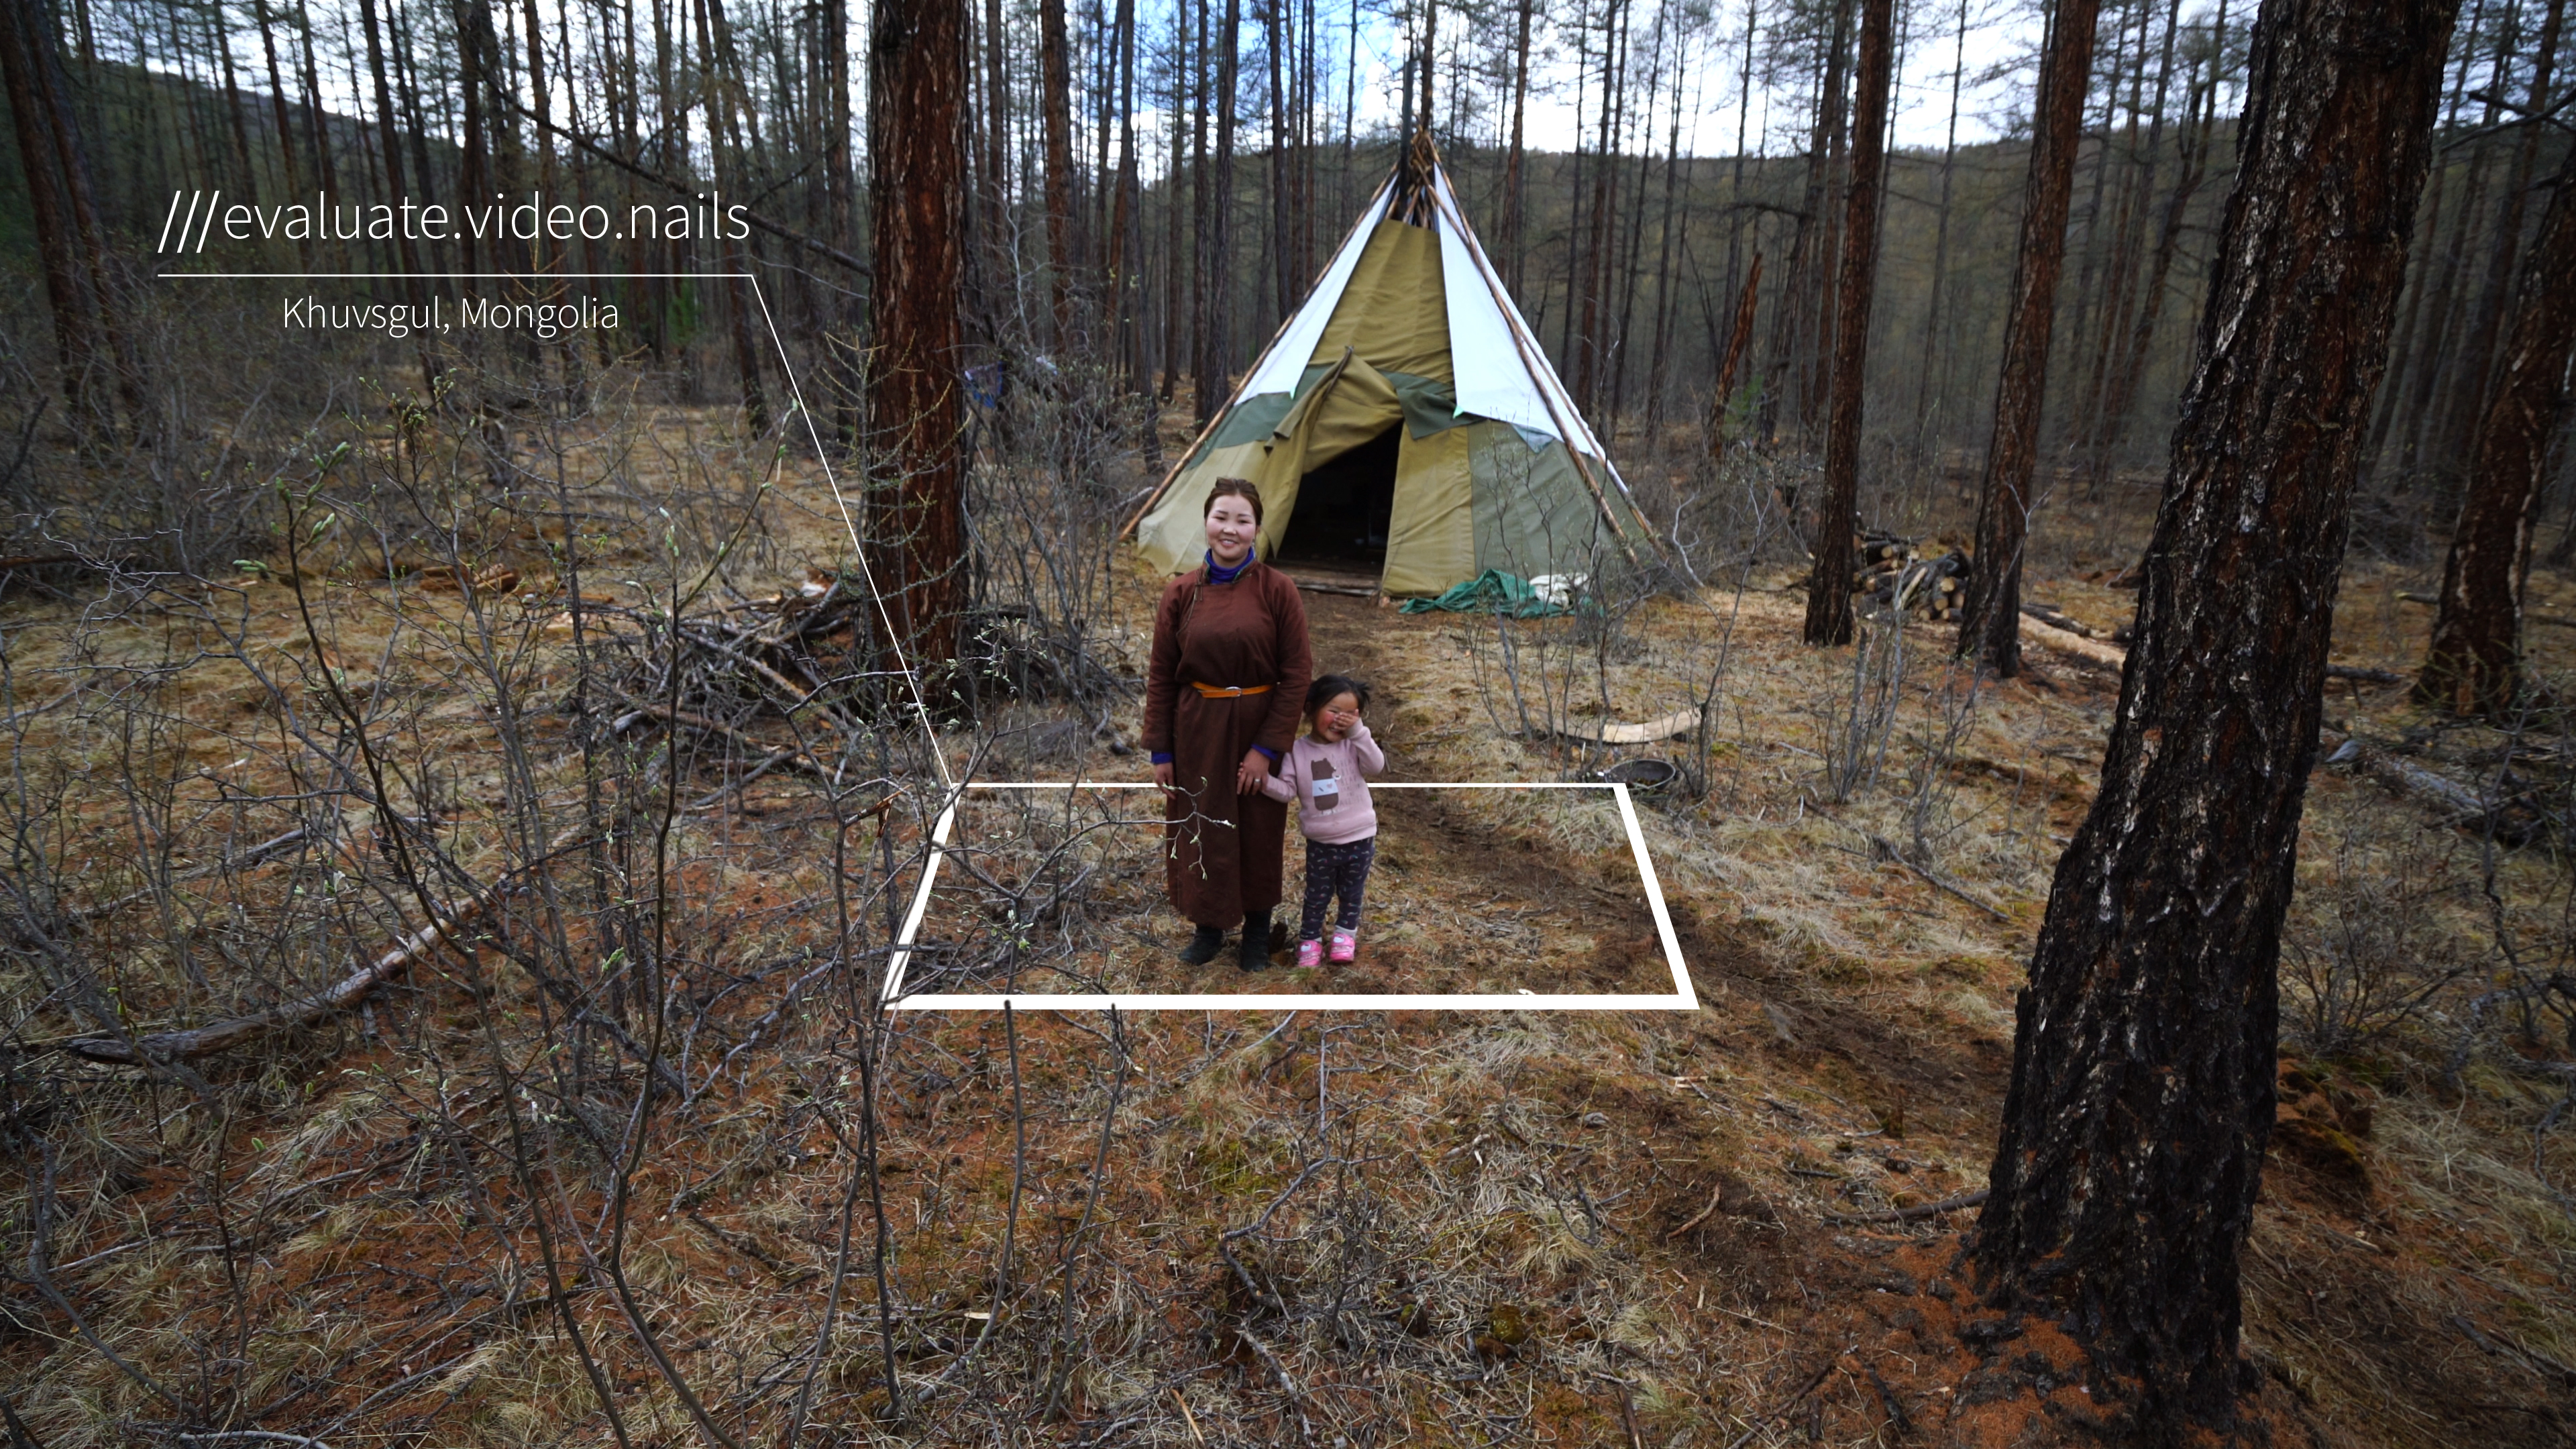 Aspiring nomads can now stay with actual nomads in Mongolia